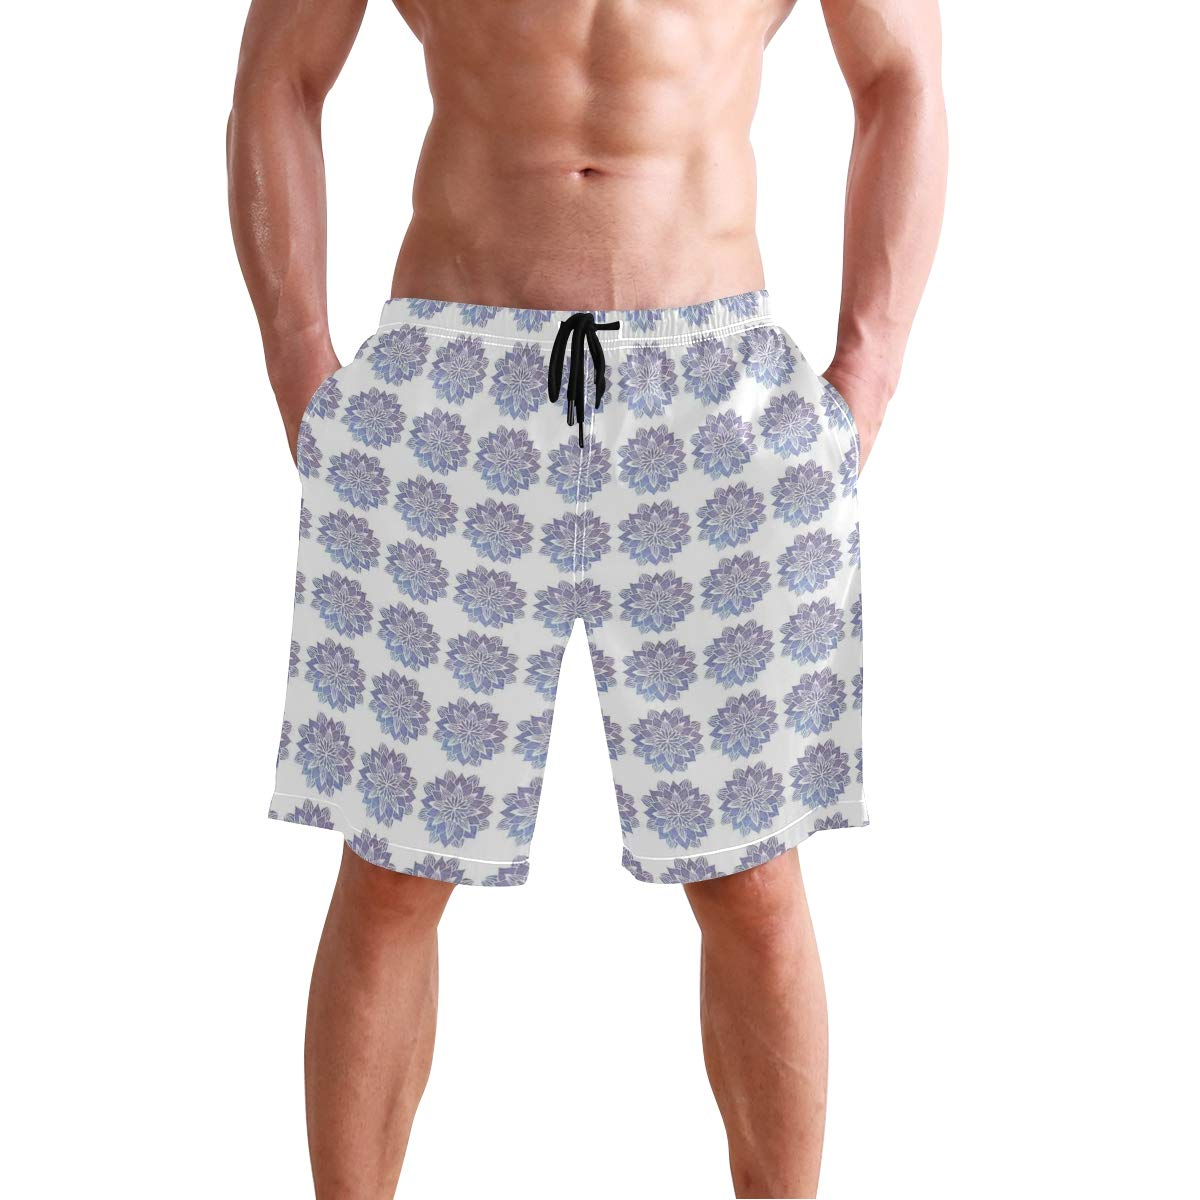 KVMV Hand Drawn Style White Flowers On Blue Background Classic Delft P 5size Beach Shorts